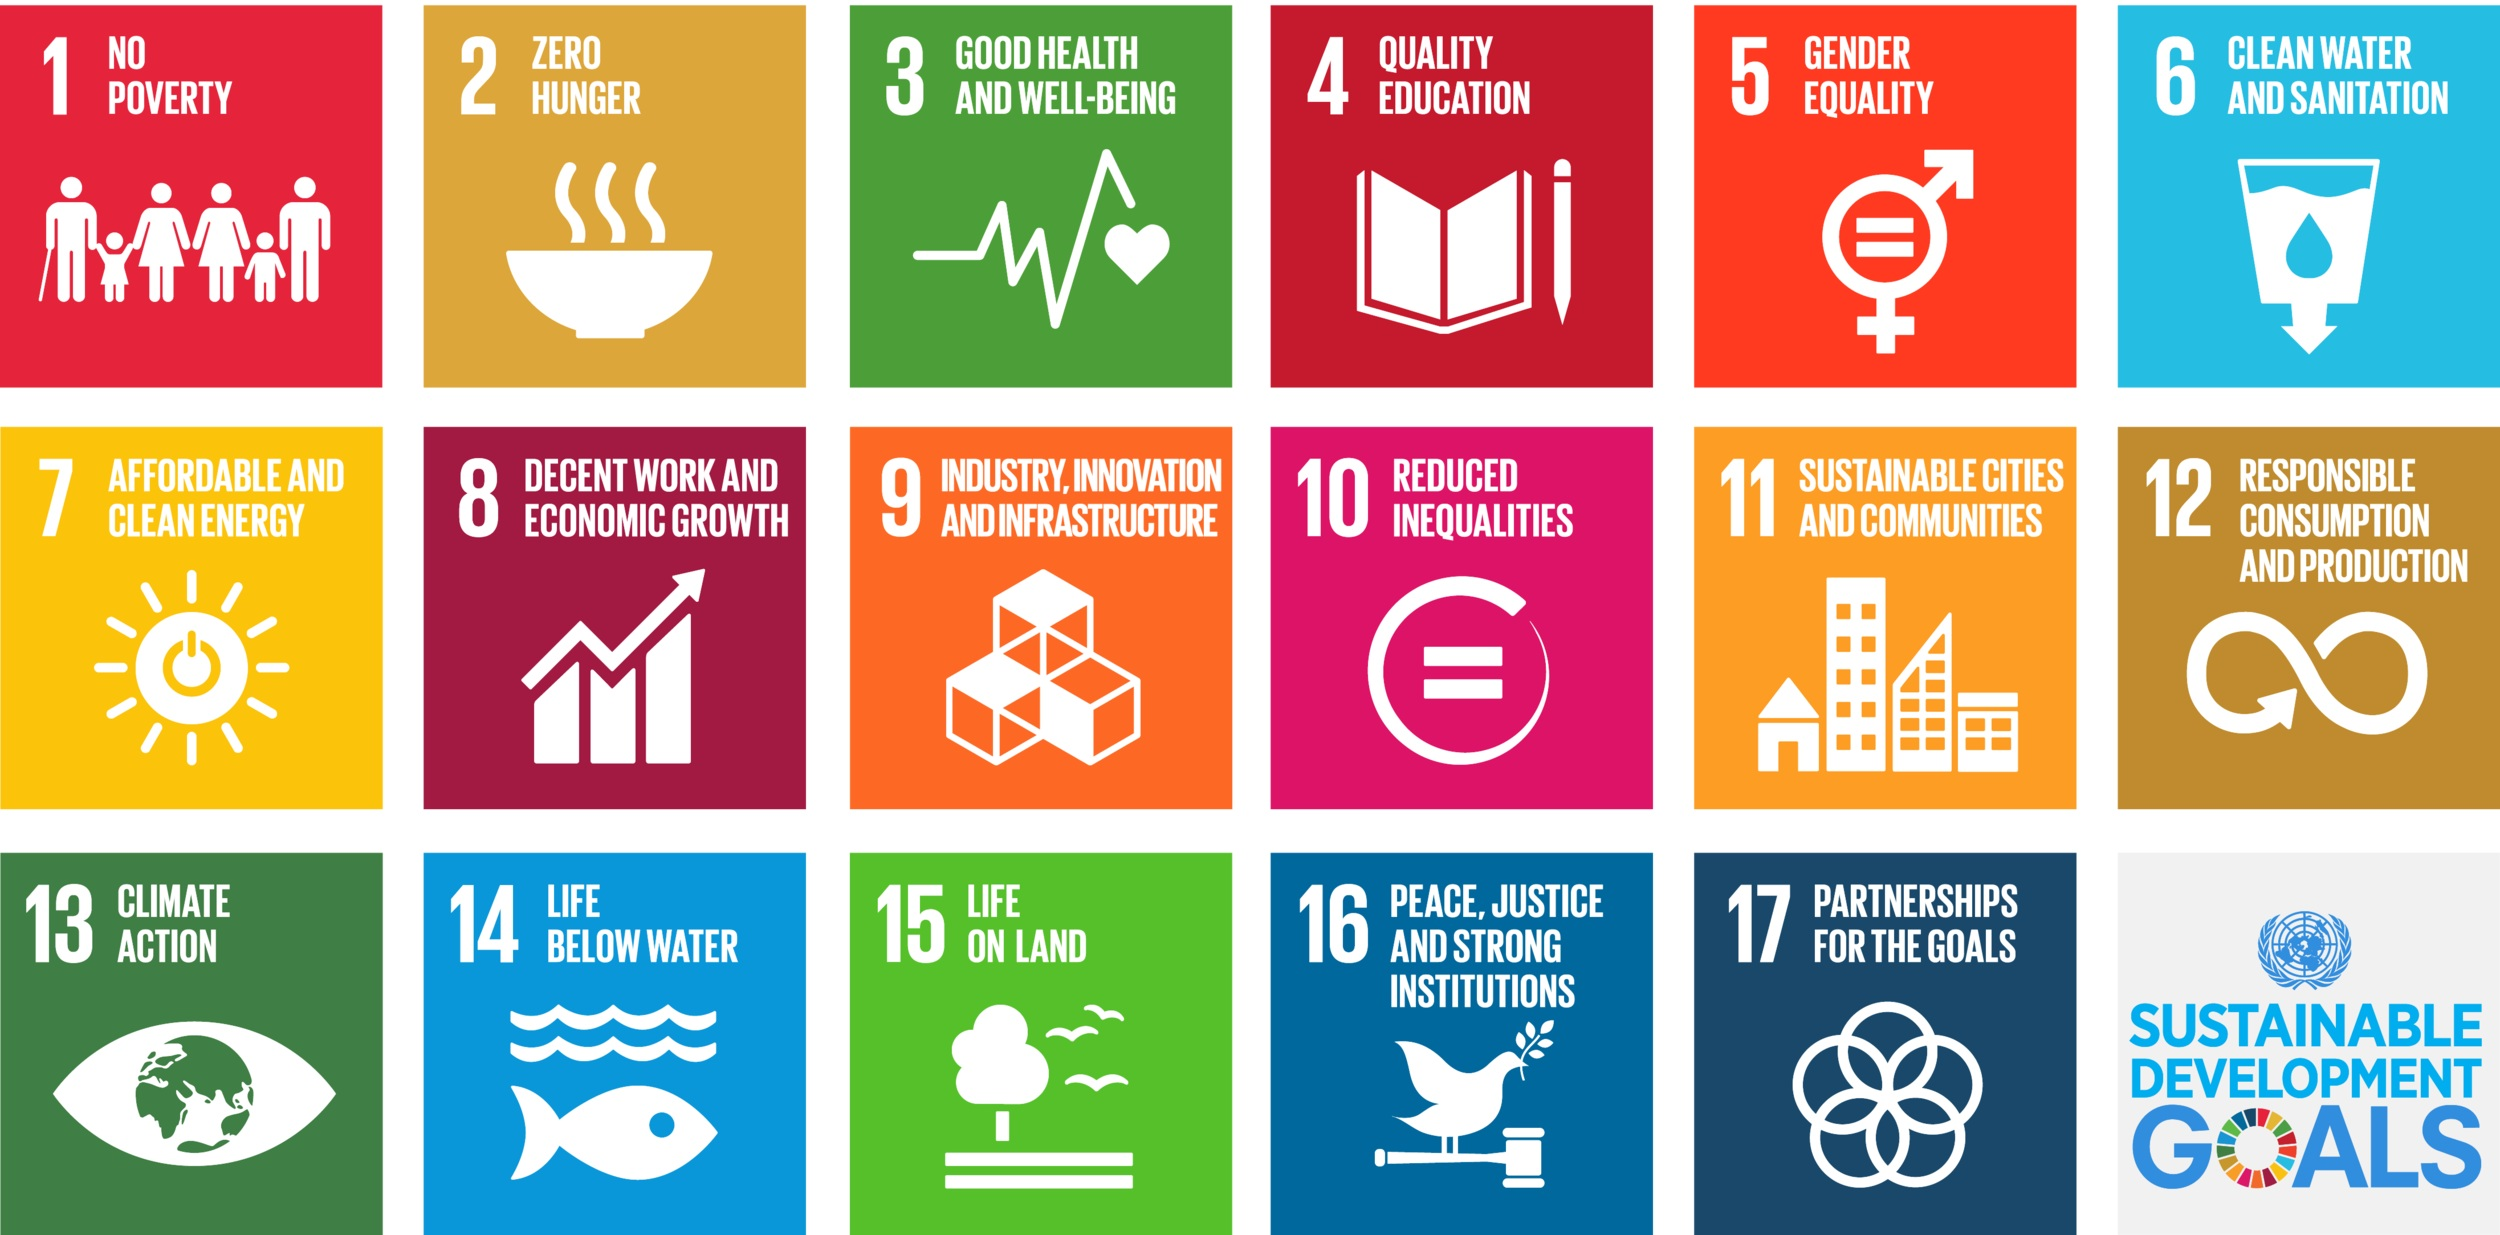 The UN's 17 Sustainable Development Goals